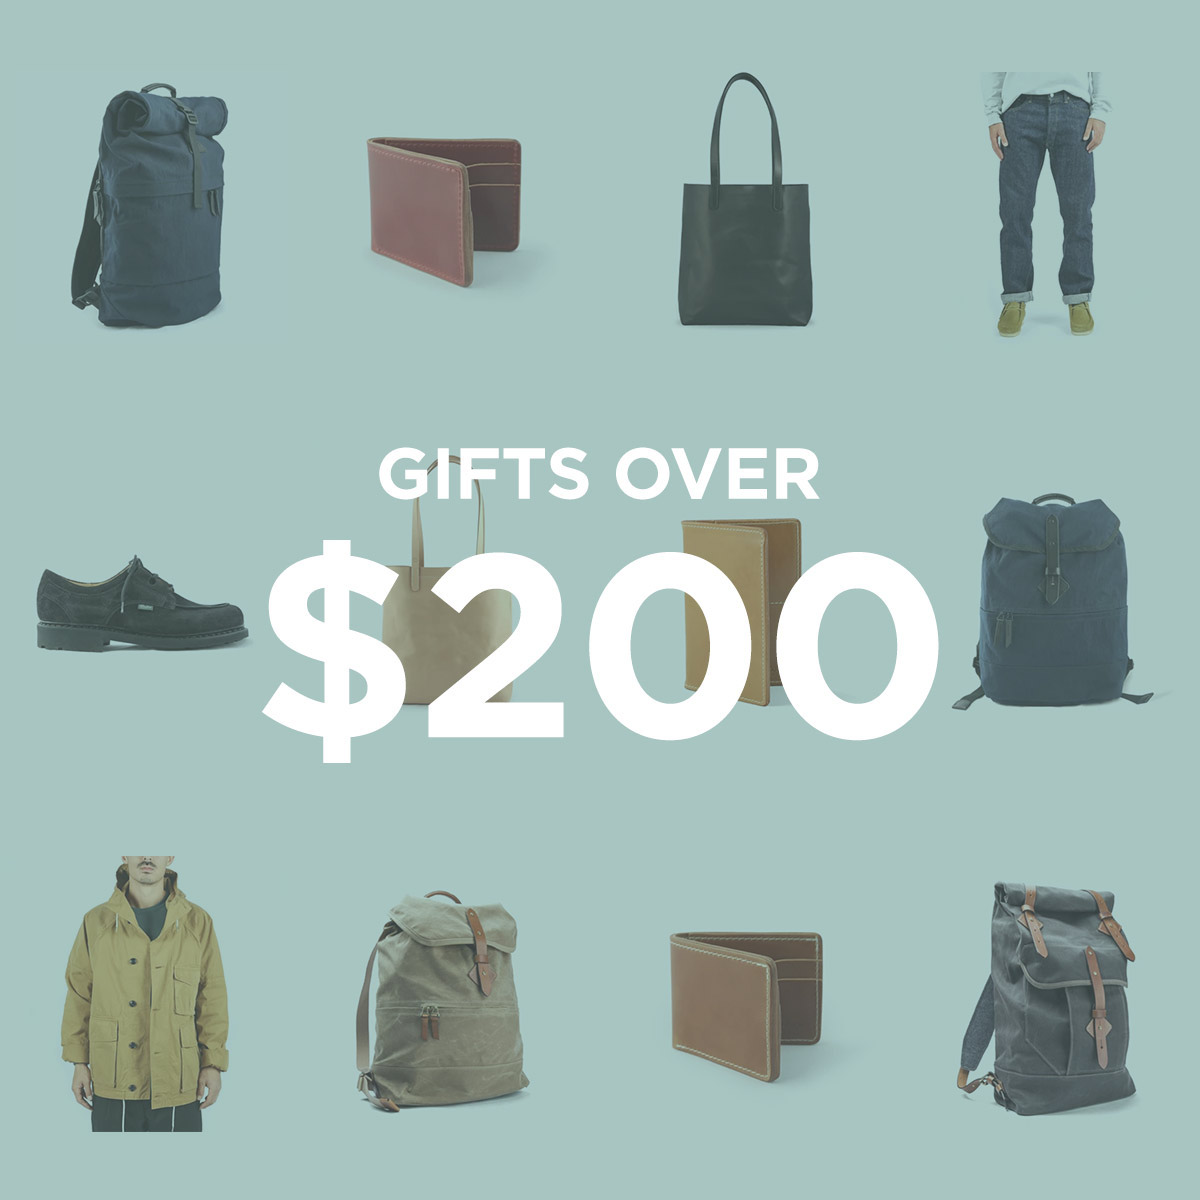 Gifts over $200